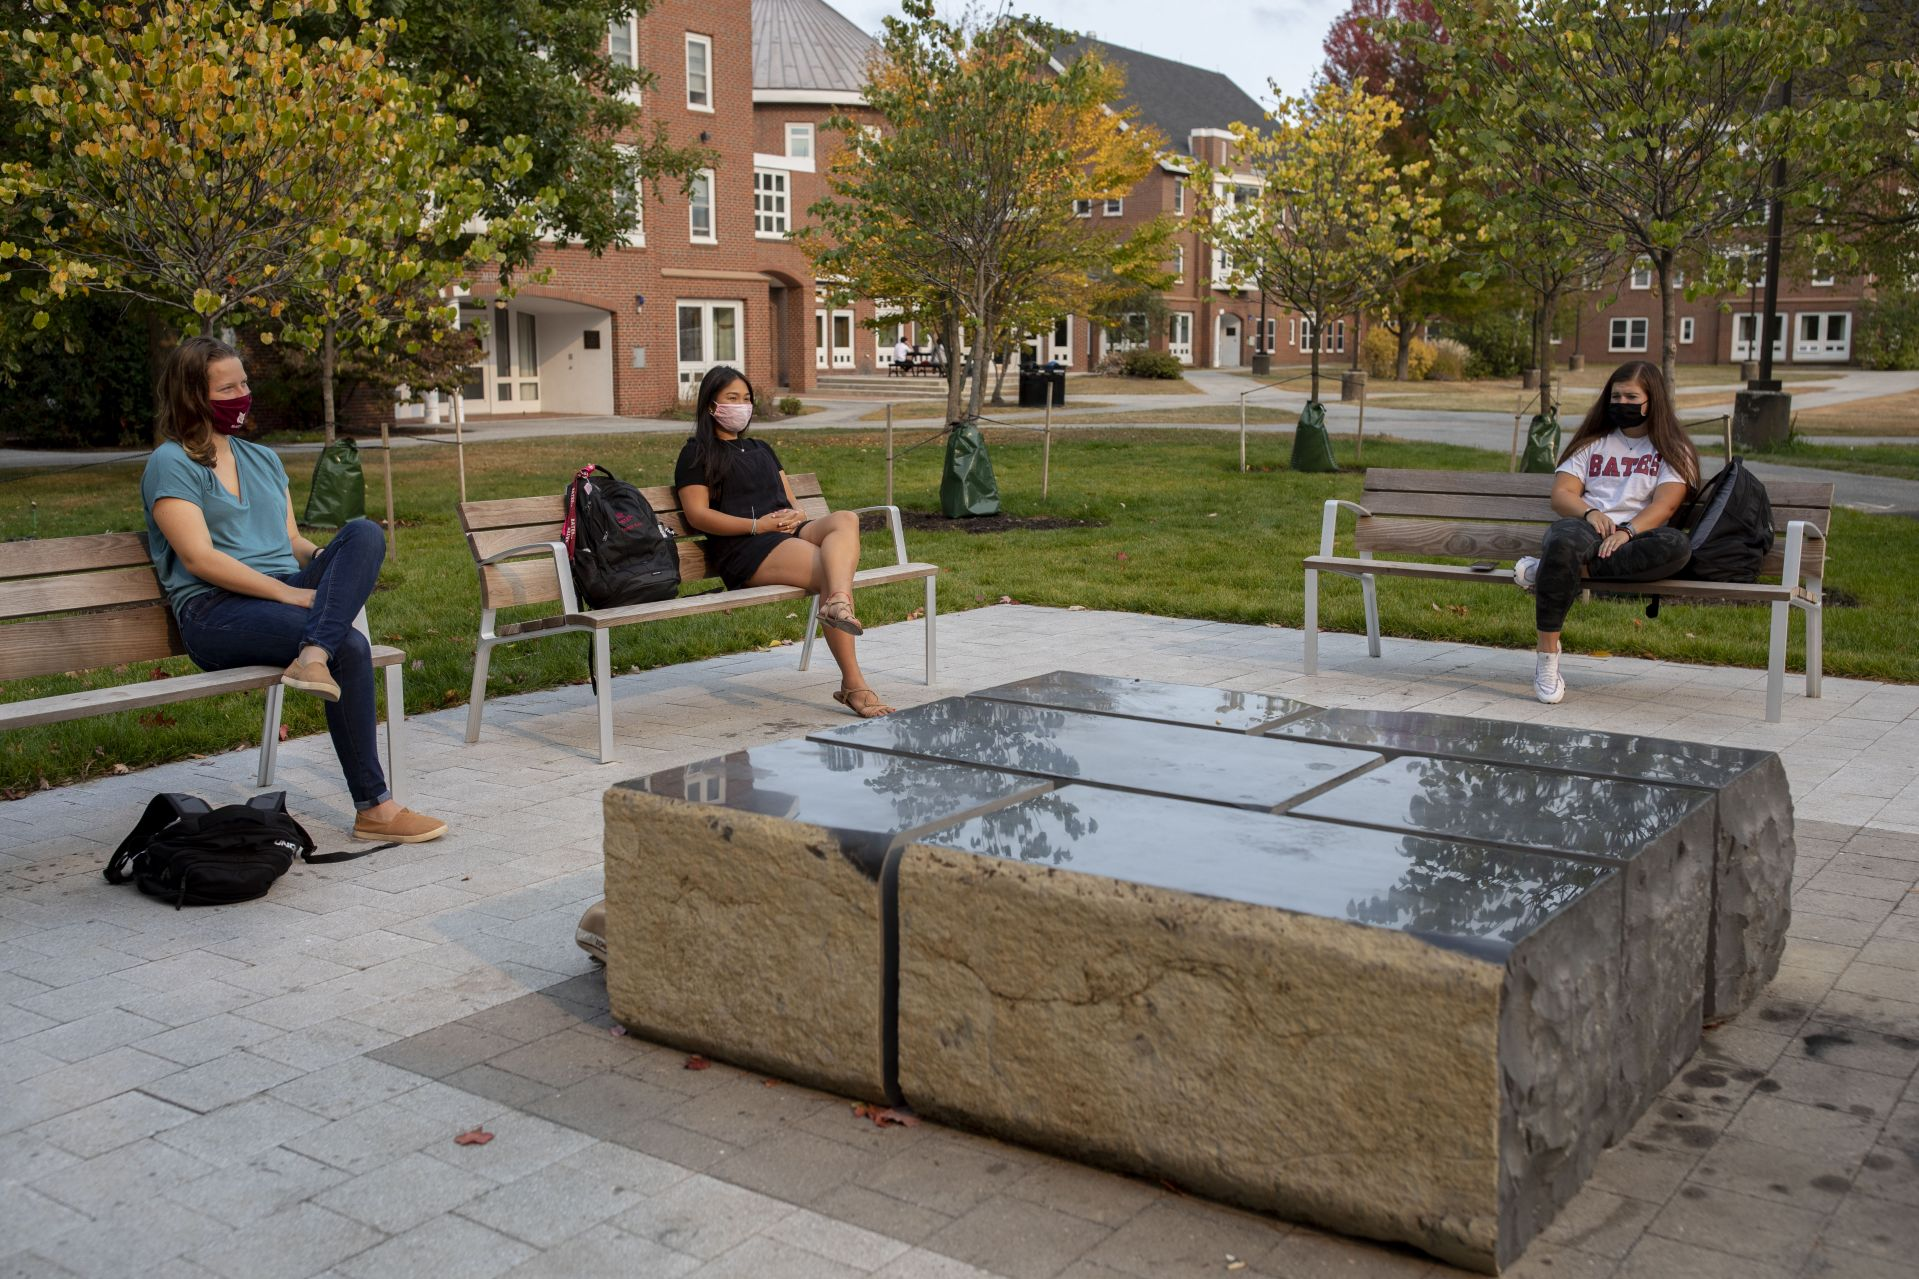 Sunday afternoon, Sept. 27, 2020, at or adjacent to the Veterans Plaza.  Janell Sato '22 of Honolulu, Hawaii, in black shirt, sits in reflection with friends Amanda Taylor '23 of Fair Lawn, N.J. (Bates shirt), Mary Colette '21 (blue shirt)  of Watertown, Conn., and Michael Ratsimbazafy '22 of Elizabeth, N.J., on the Veterans Plaza.